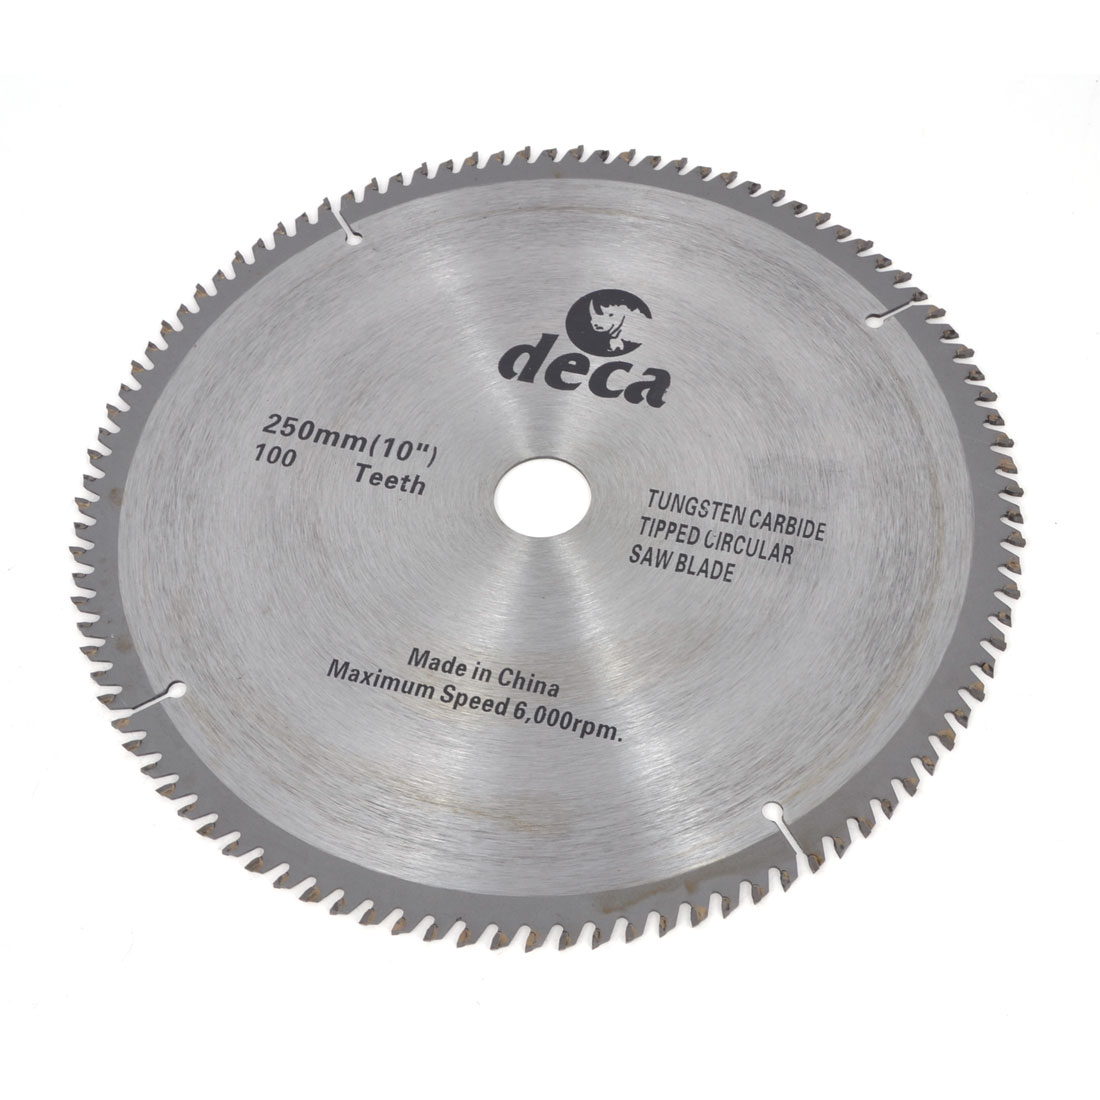 "Wood Cutting 6000PRM Speed 100 Teeth 10"" Diameter Saw Cutter"